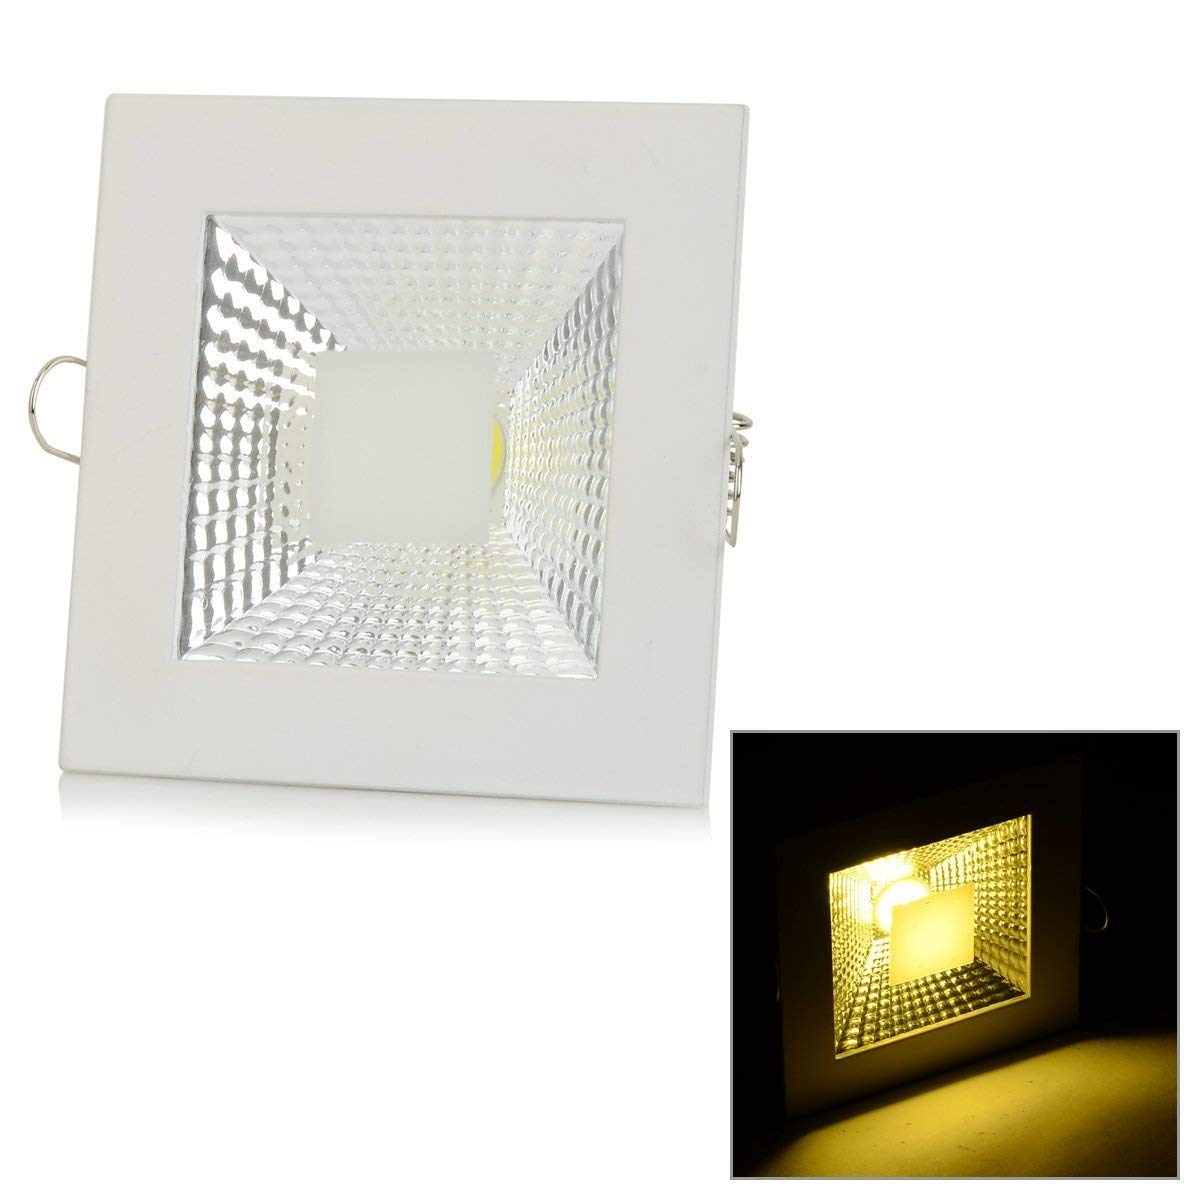 MyEasyShopping 5W 450lm 3500K COB LED Warm White Light Ceiling Lamp - White + Silvery Grey (AC 90~265V)